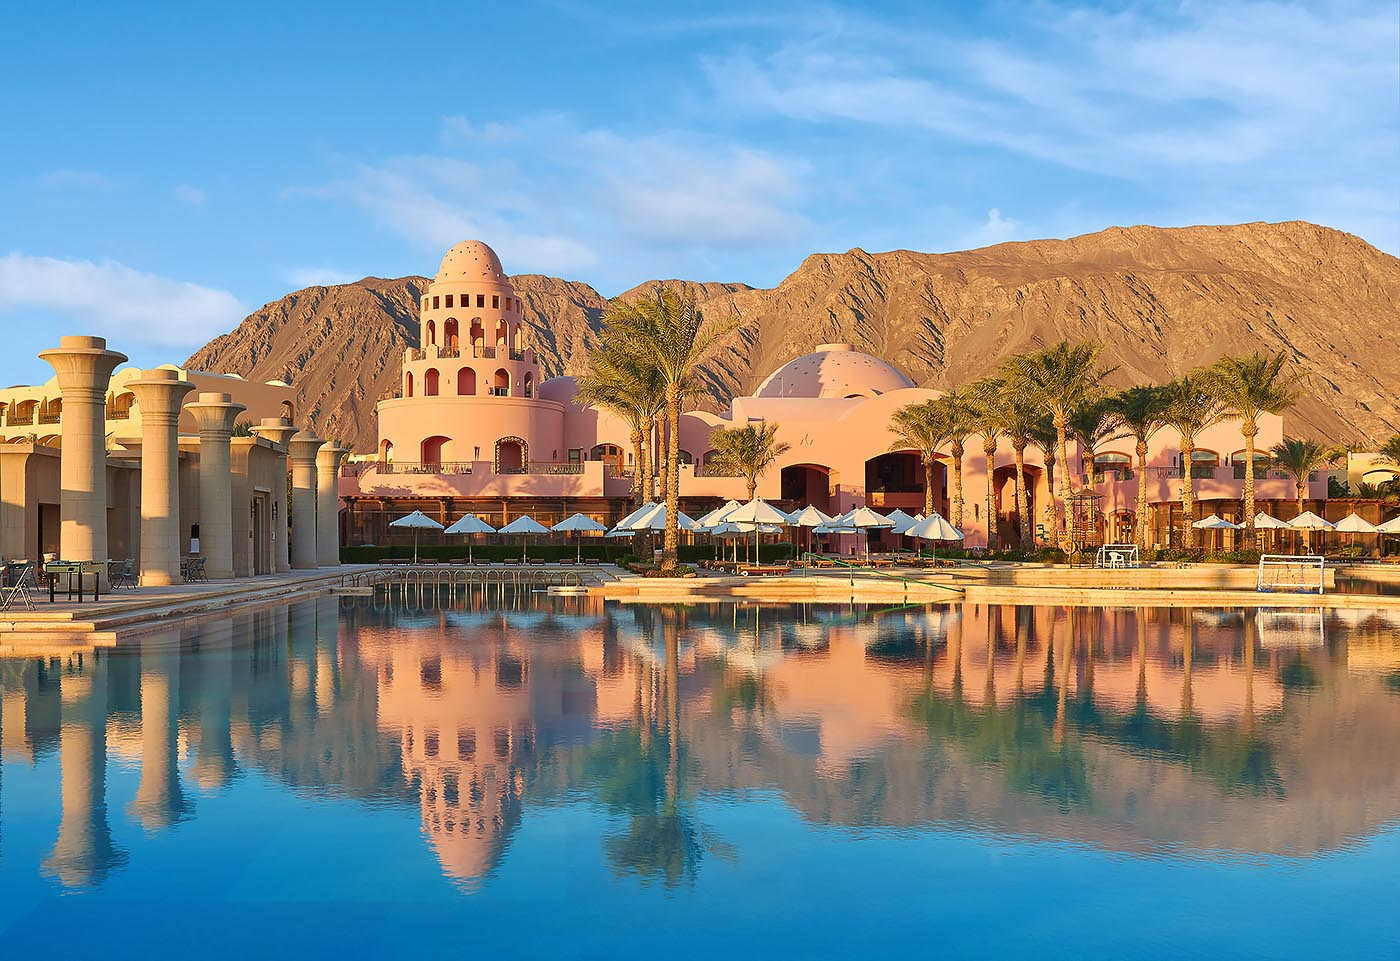 Sofitel Taba heights beach resort overview morning - Mohamed Abdel-Hady Photography